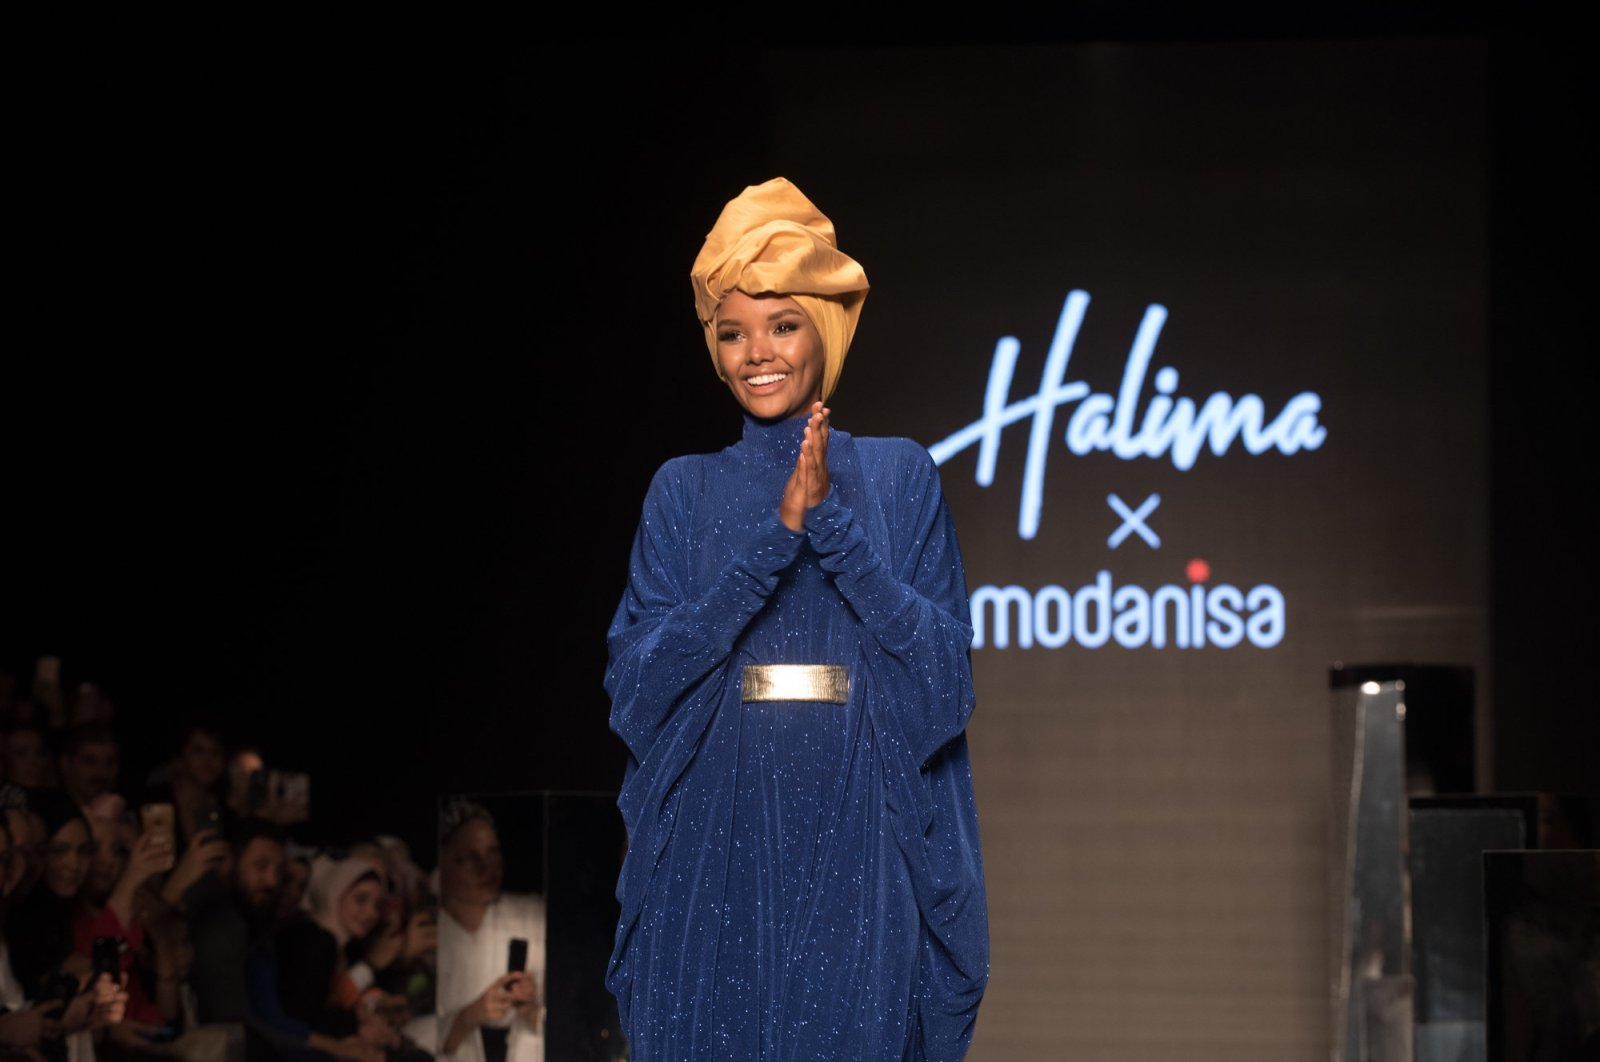 Halima Aden accepts greetings following the show named after her featuring a headscarf collection, Istanbul, April 20, 2019. (FILE Photo)